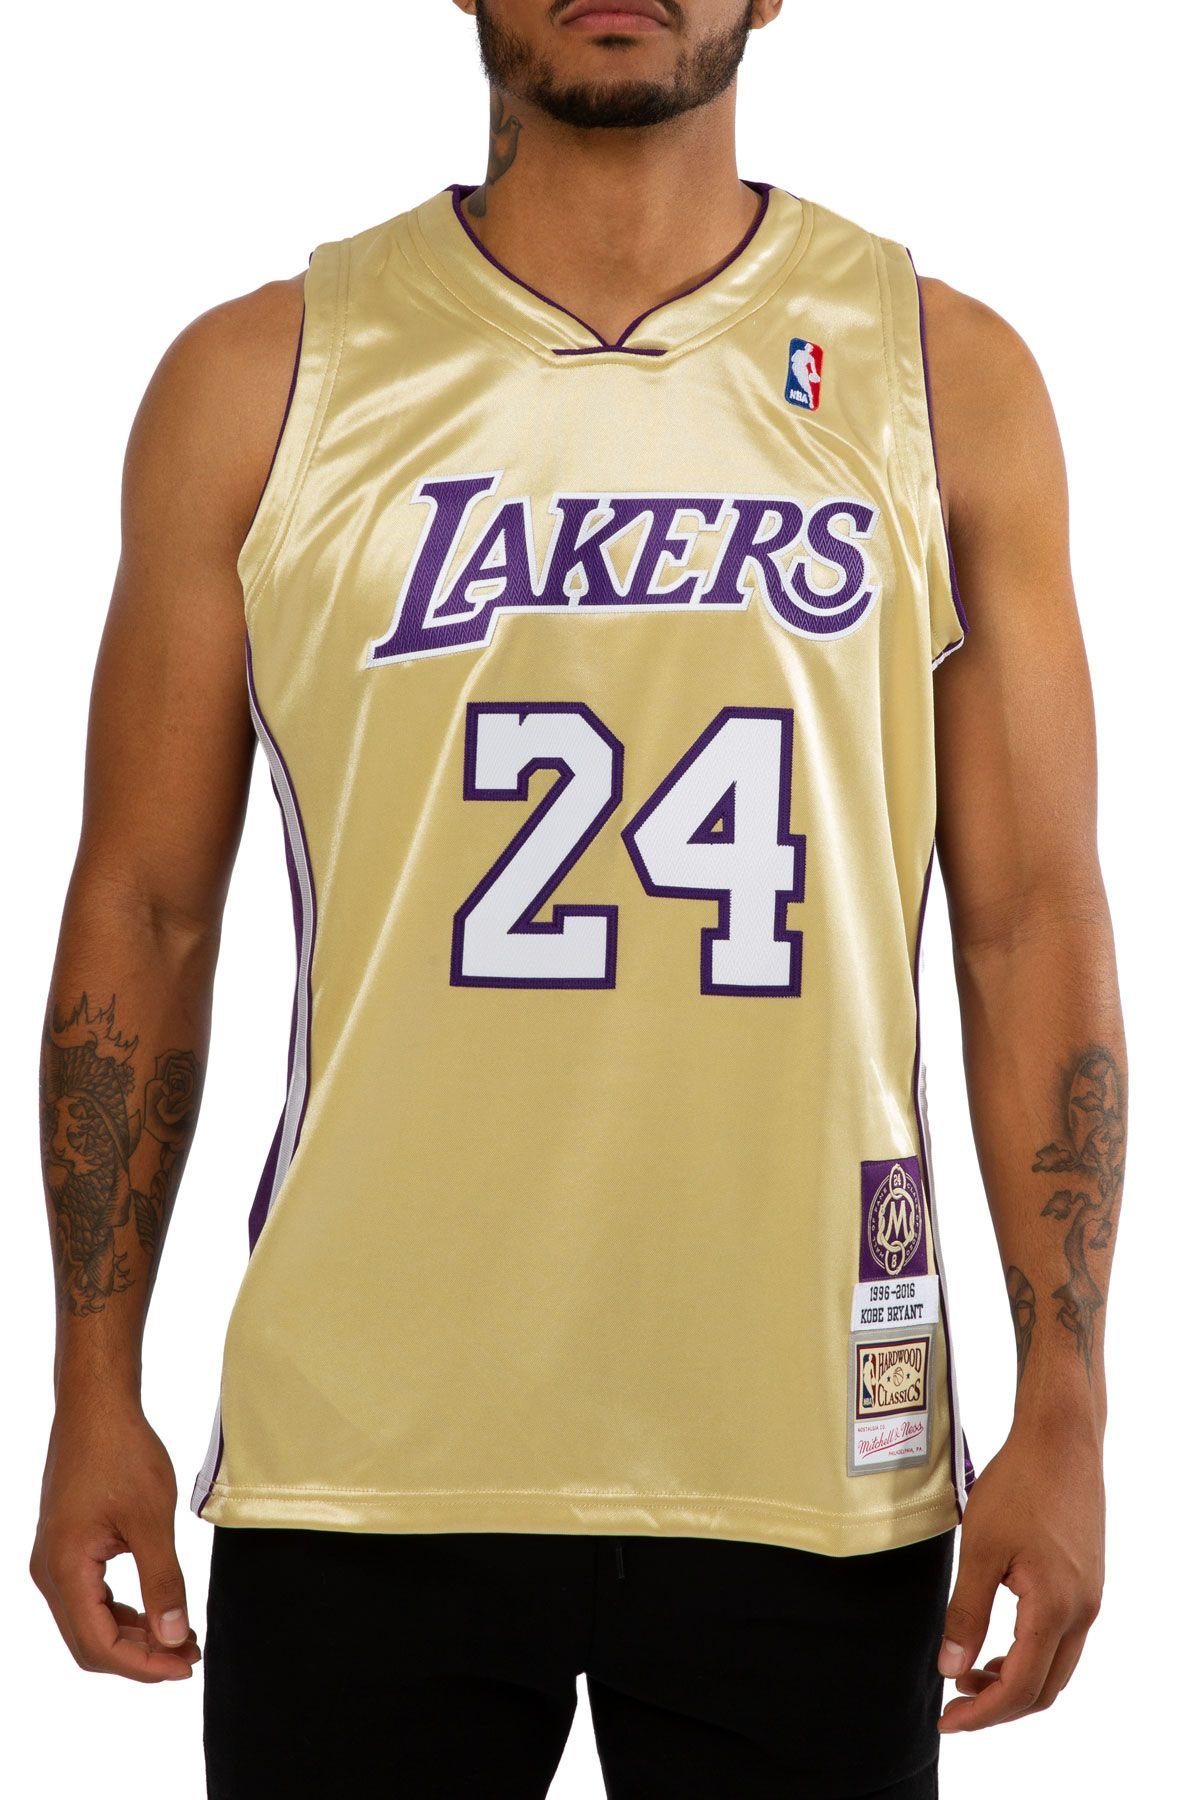 LOS ANGELES LAKERS KOBE BRYANT HALL OF FAME AUTHENTIC JERSEY